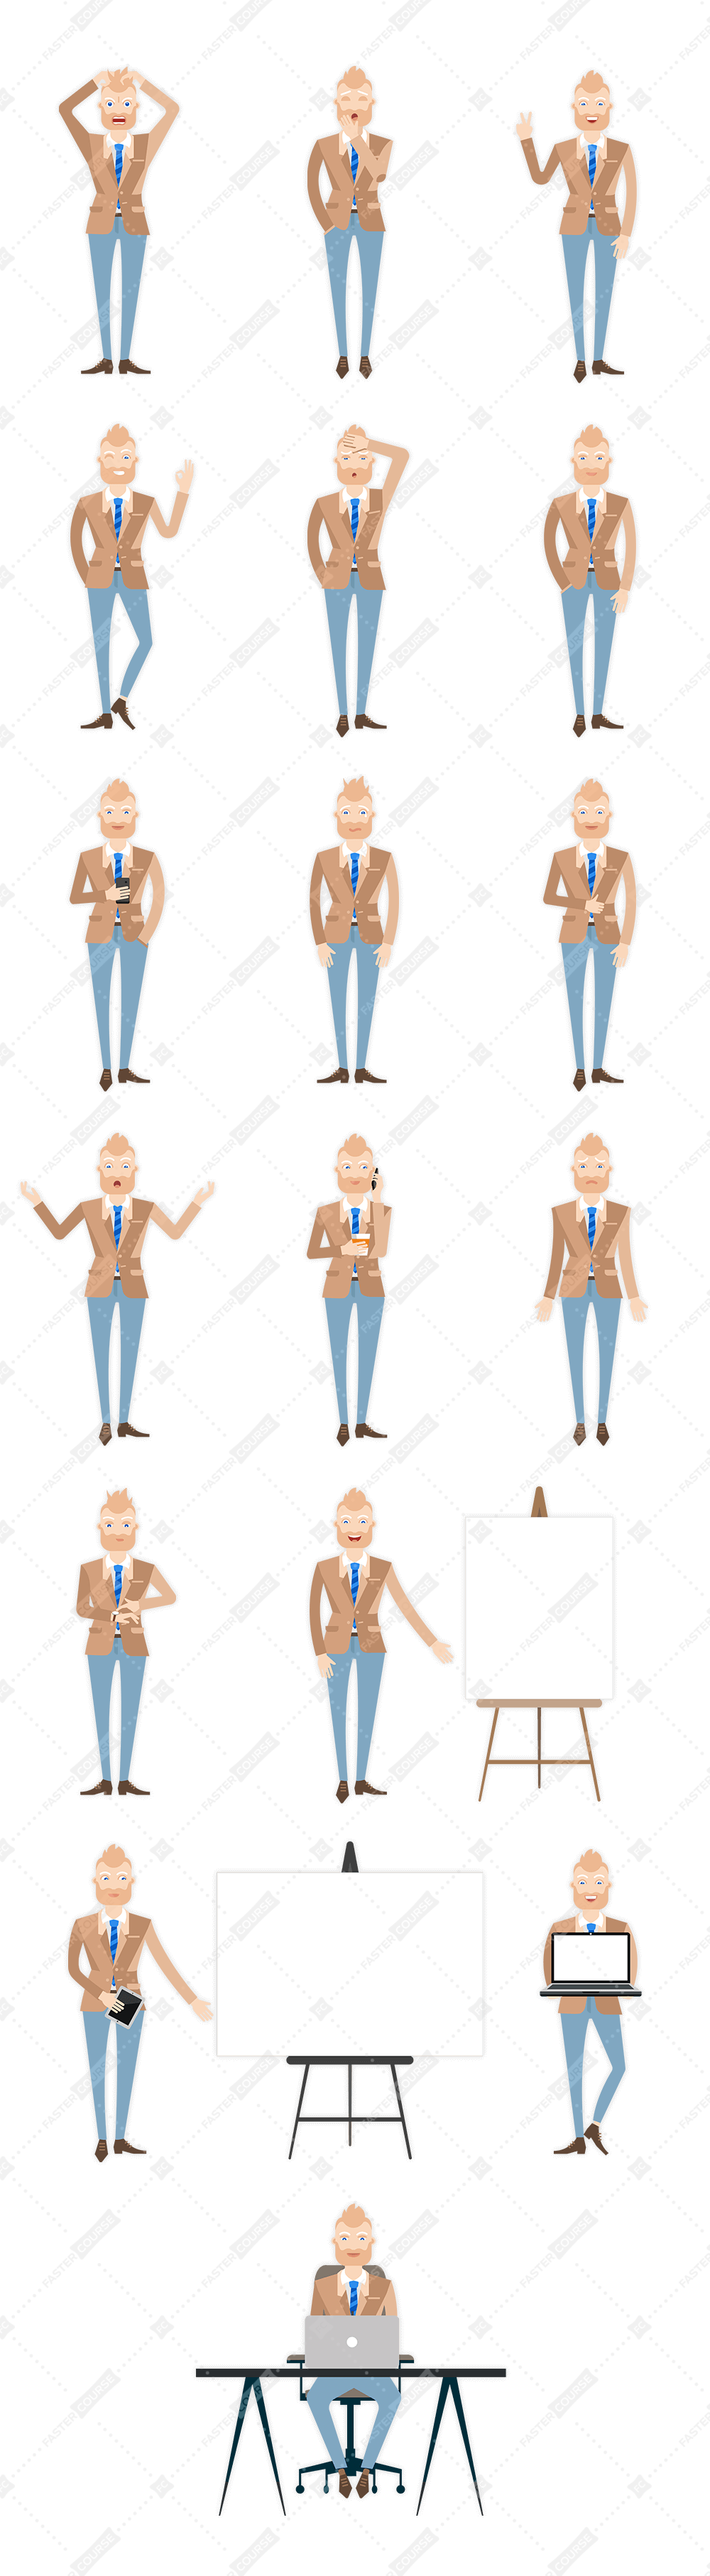 Characters_All_Poses_Office_Adam_wm